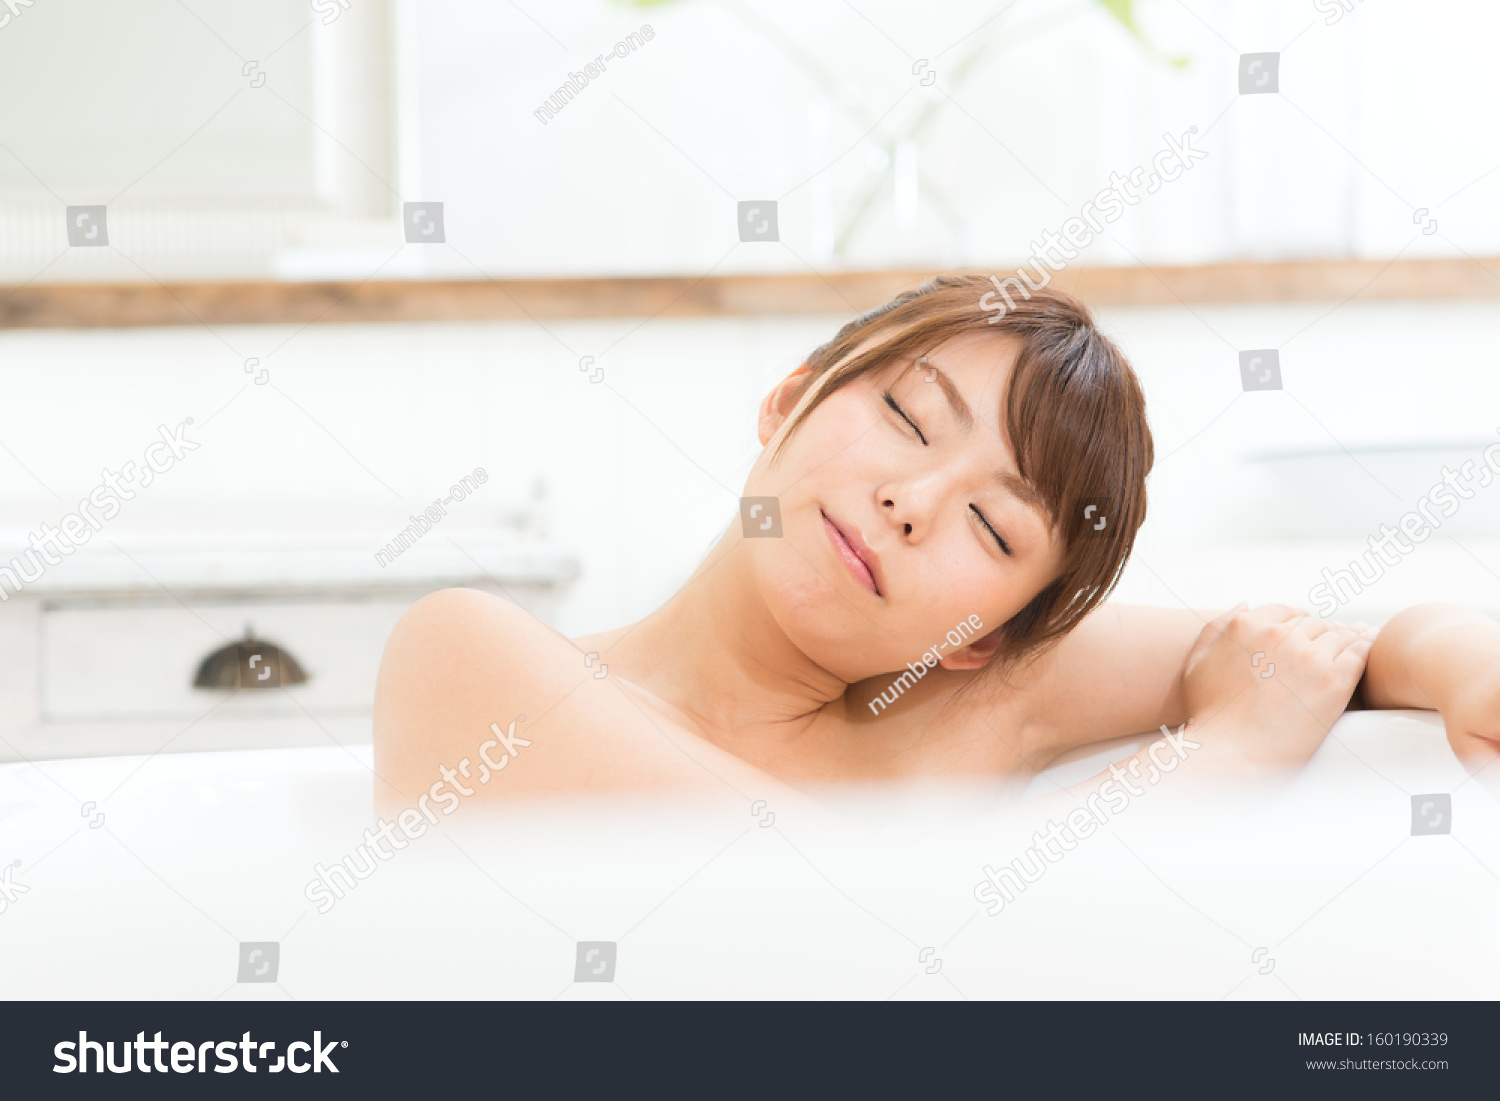 Beautiful asian woman relaxing in the bathroom stock photo 160190339 shutterstock - Relaxing japanese bathroom design for ultimate relaxation bath ...